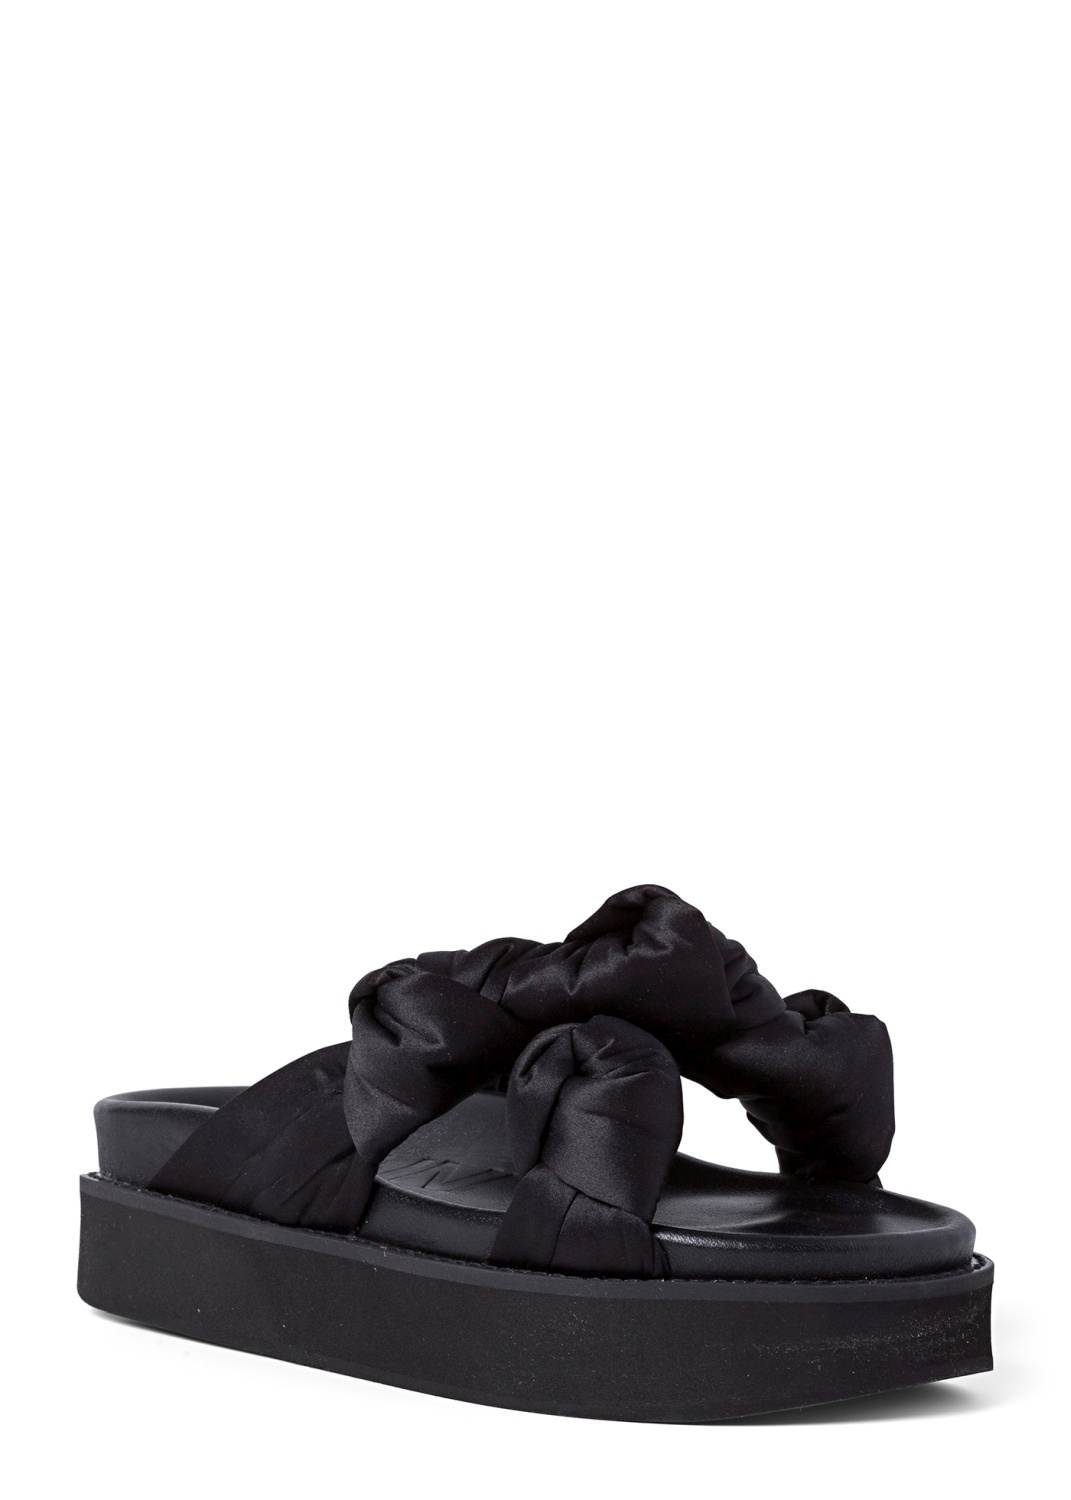 Mid Knotted Sandal image number 1